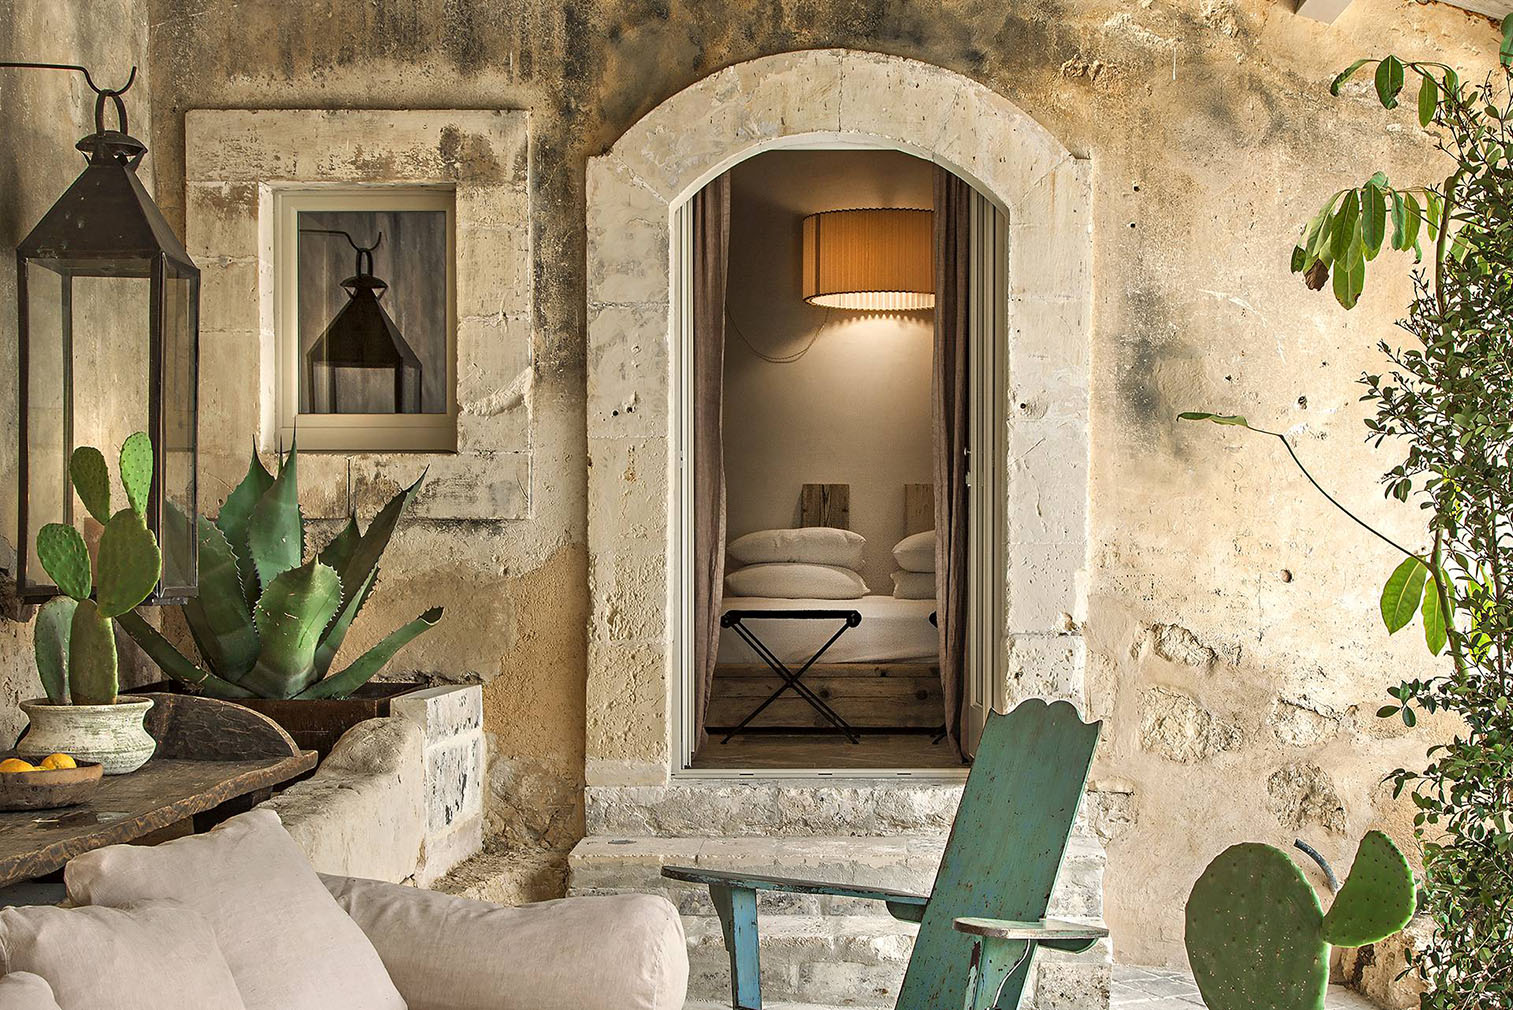 Holiday-home-of-the-week-a-bucolic-Sicilian-masseria-rescued-from-ruin-14.jpg